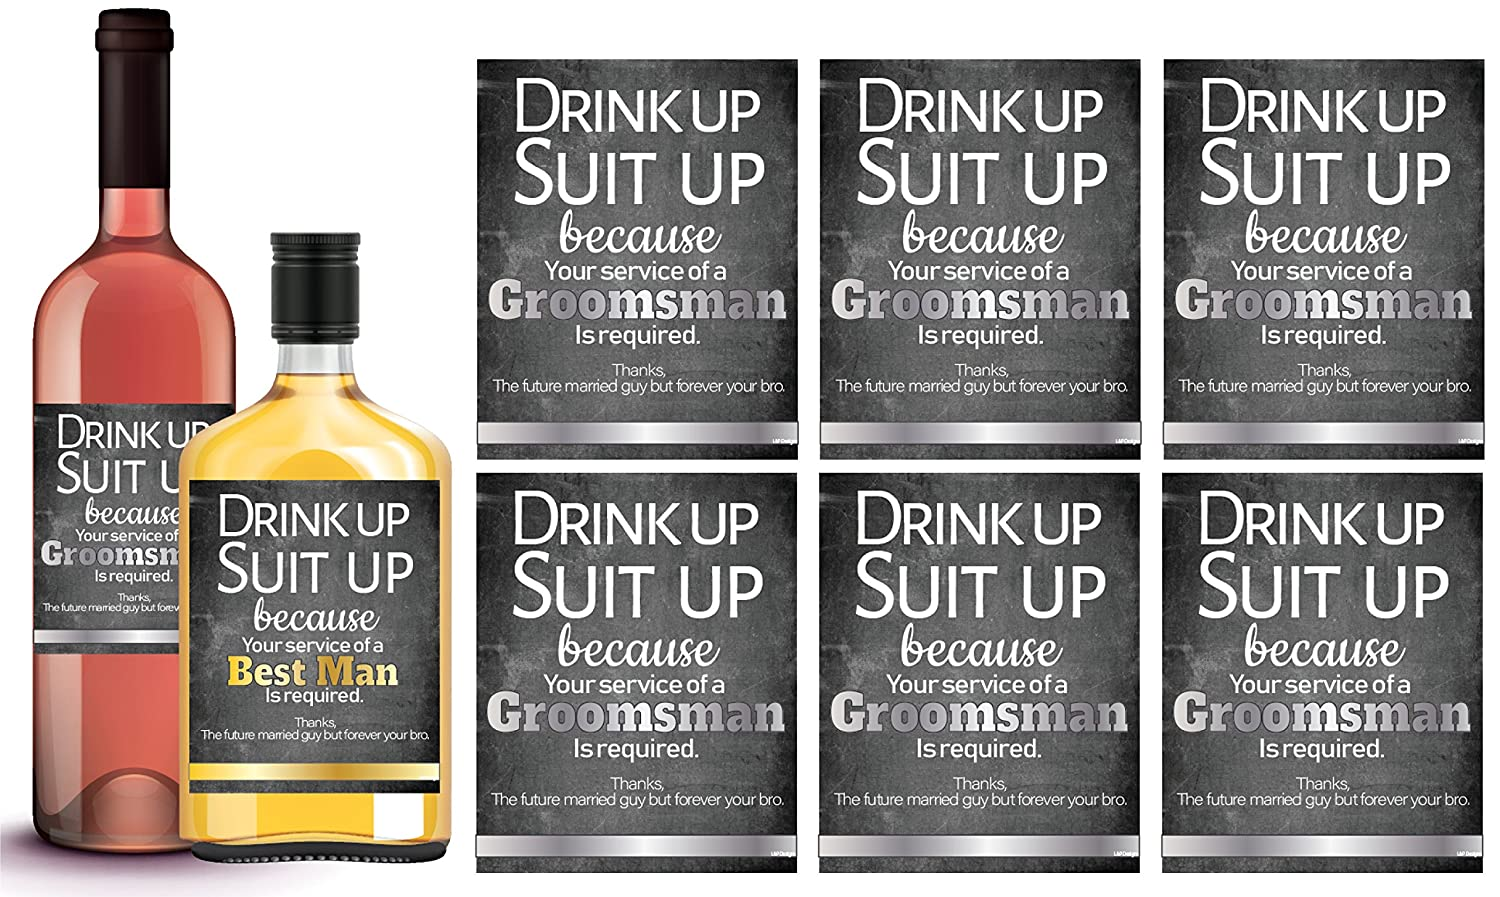 6 Will You Be My Groomsman + 1 Bonus Best Man Proposal Wine Labels or Liquor Labels, Whisky, Vodka, Rum, Beer Bottle Labels or Stickers Set, Groomsmen Party Favors, Party Decorations. Proposal